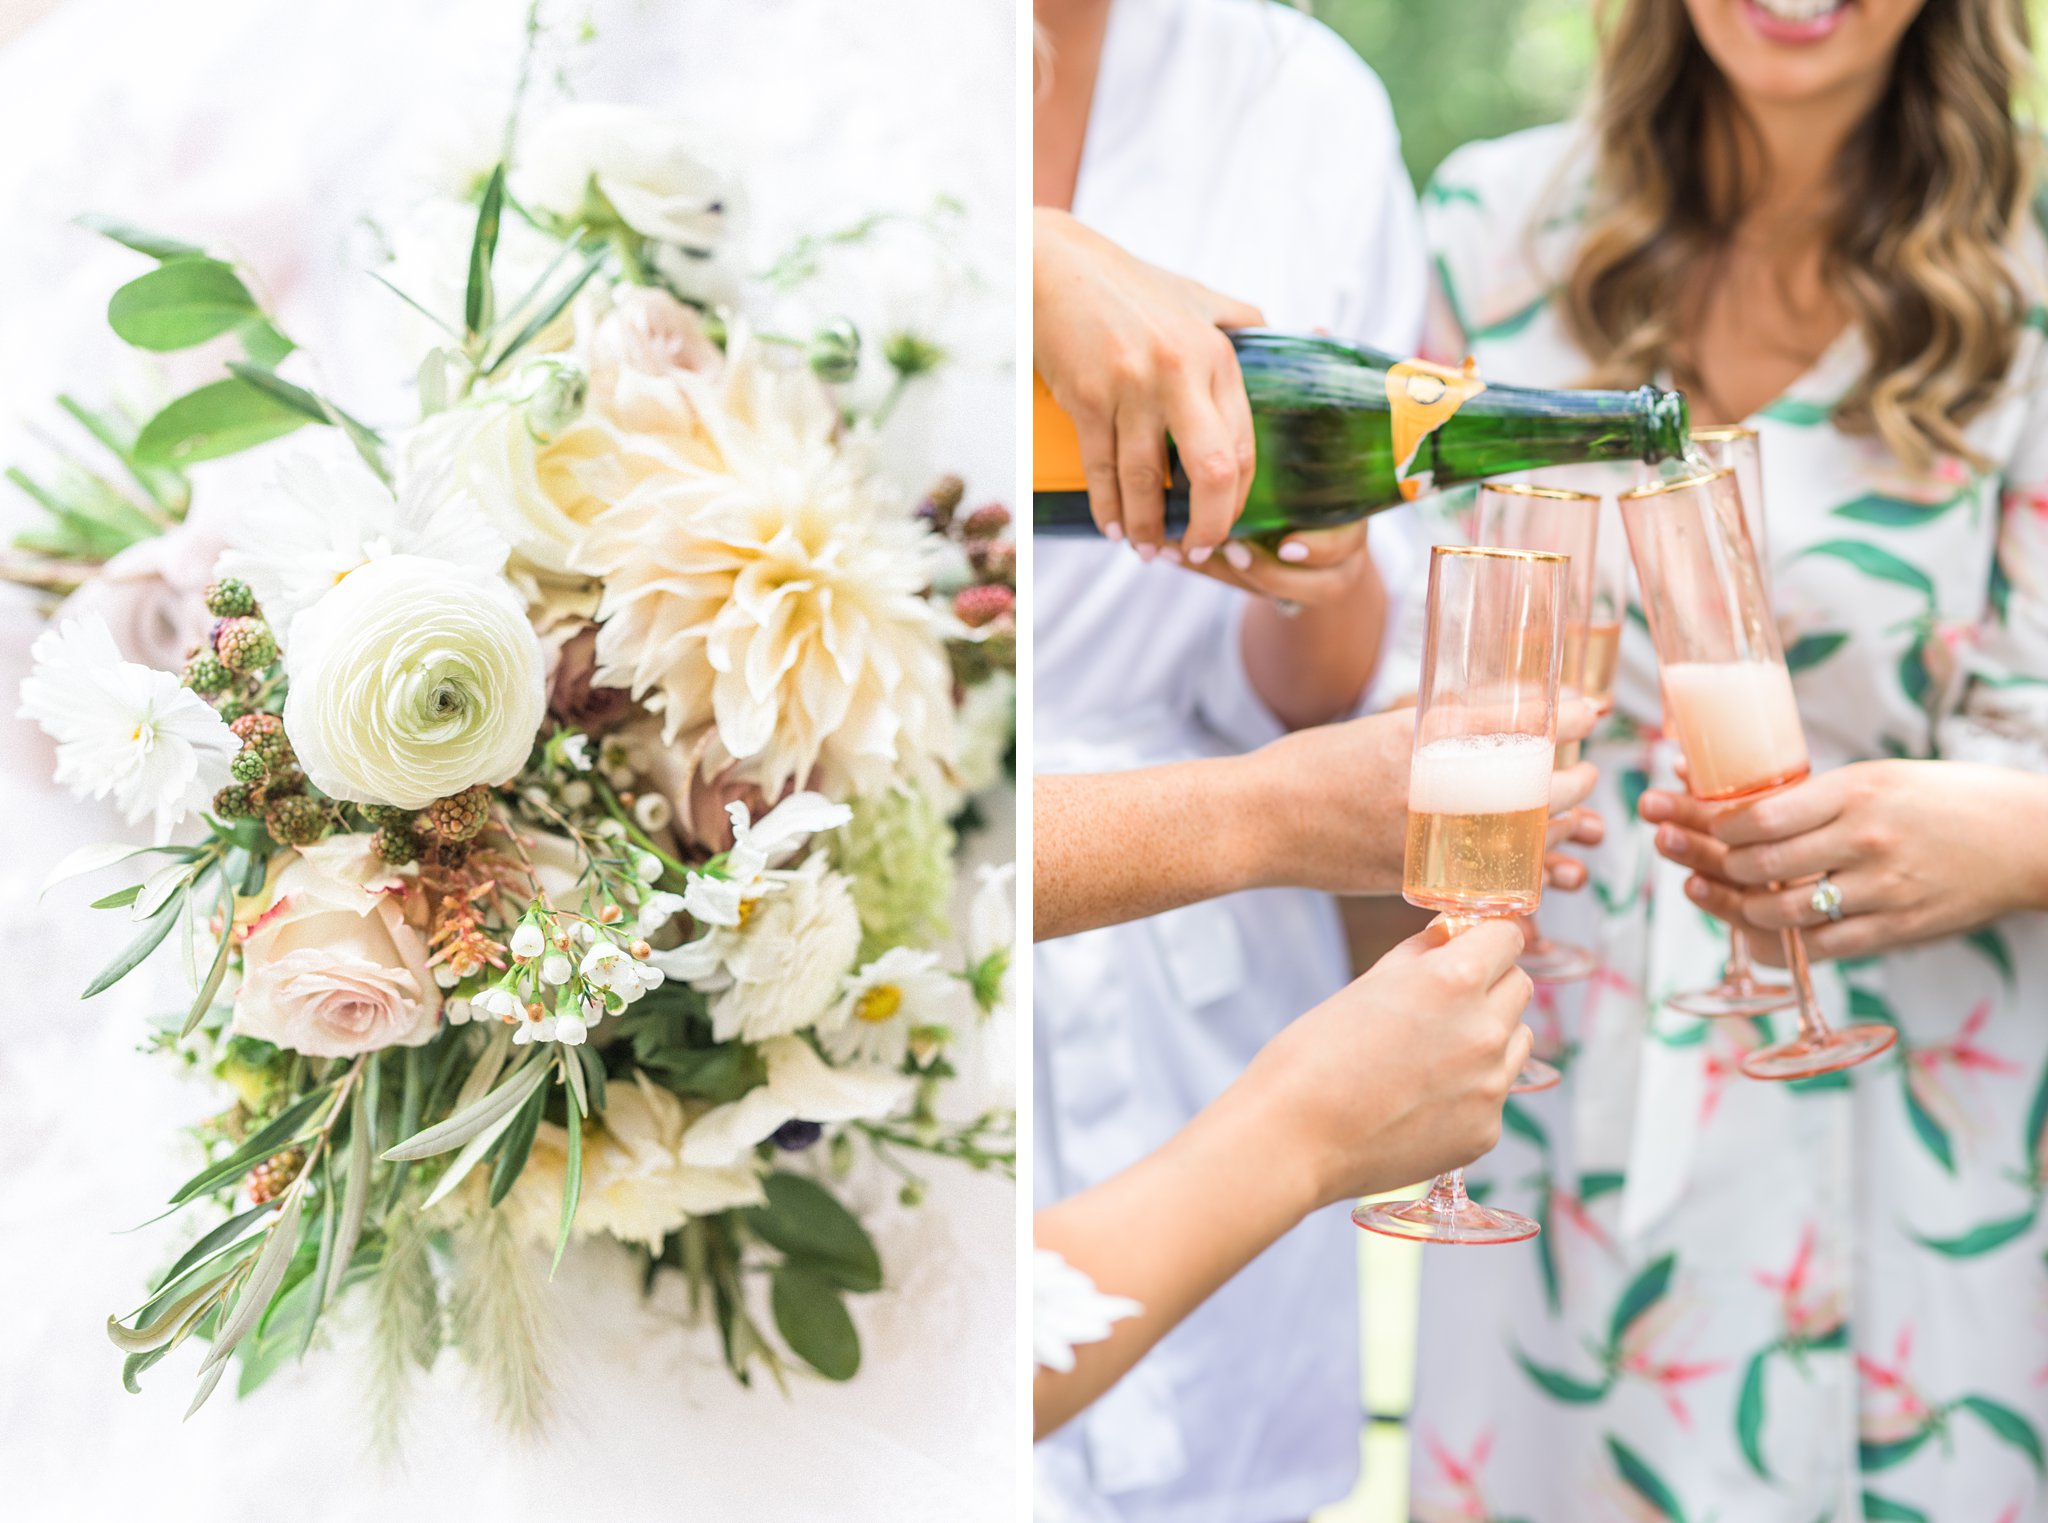 Berry bouquet, bridal, pink champagne, Private Estate Wedding Photos, Amy Pinder Photography